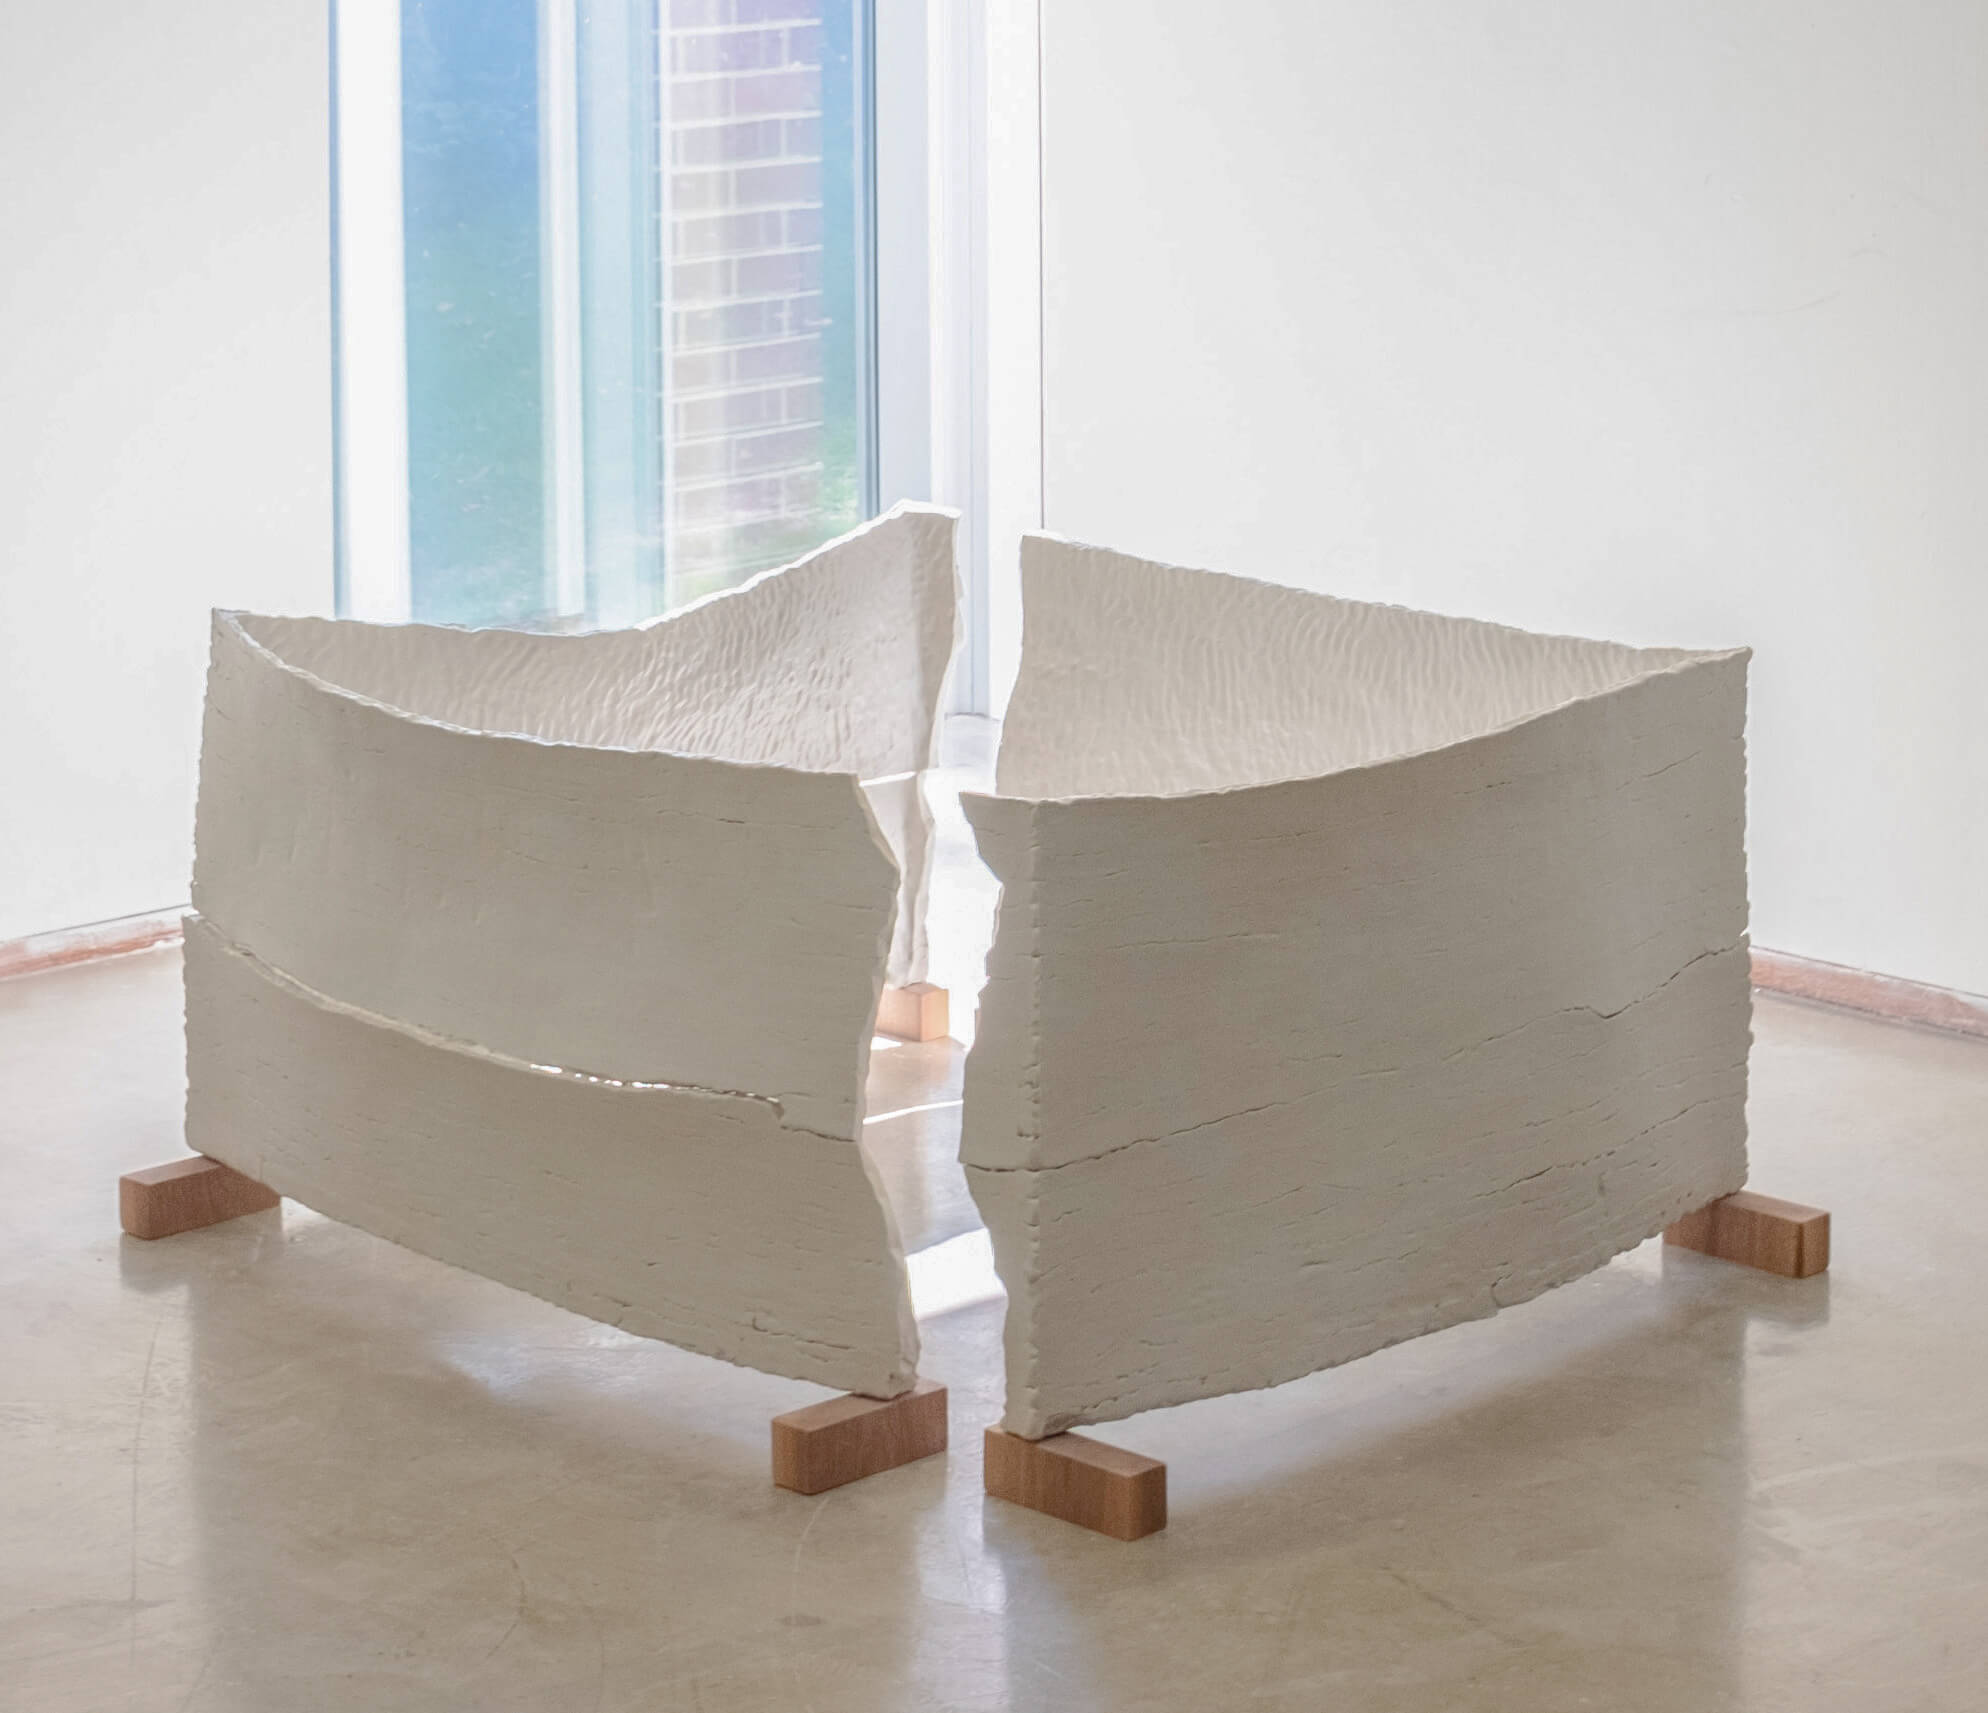 Large white square sculpture resting on concrete floor